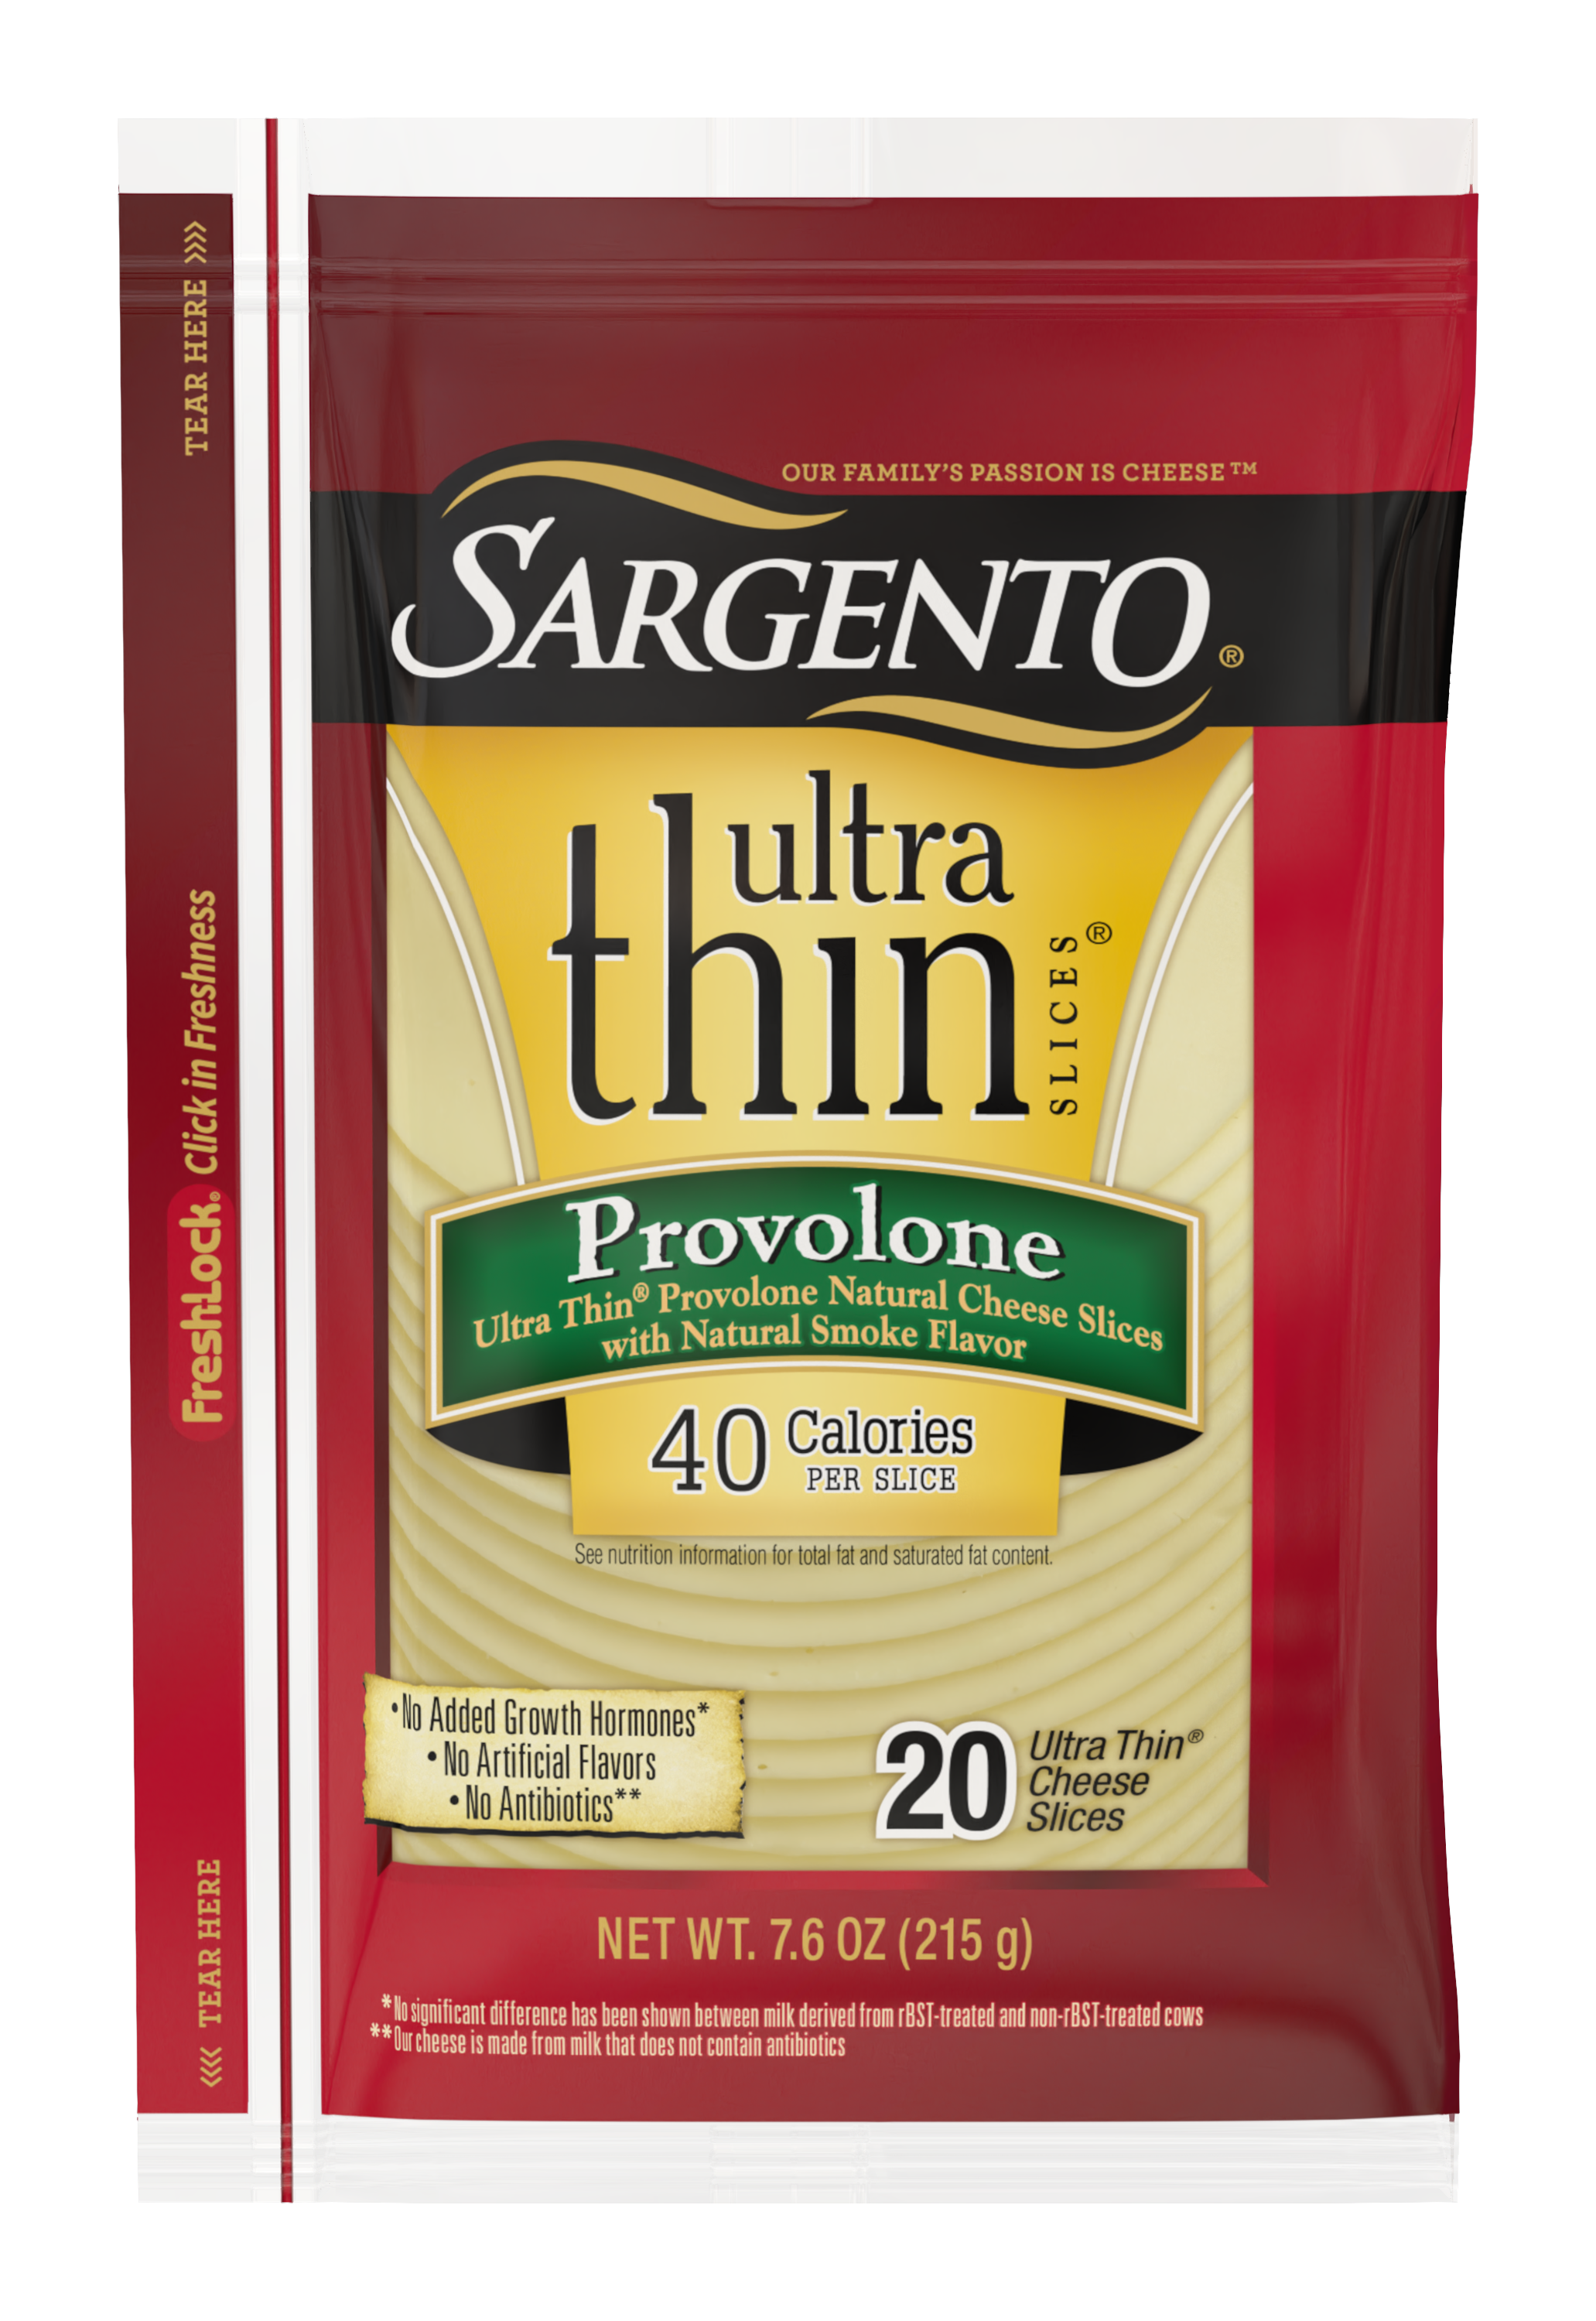 Sargento® Provolone Natural Cheese with Natural Smoke Flavor Ultra Thin® Slices